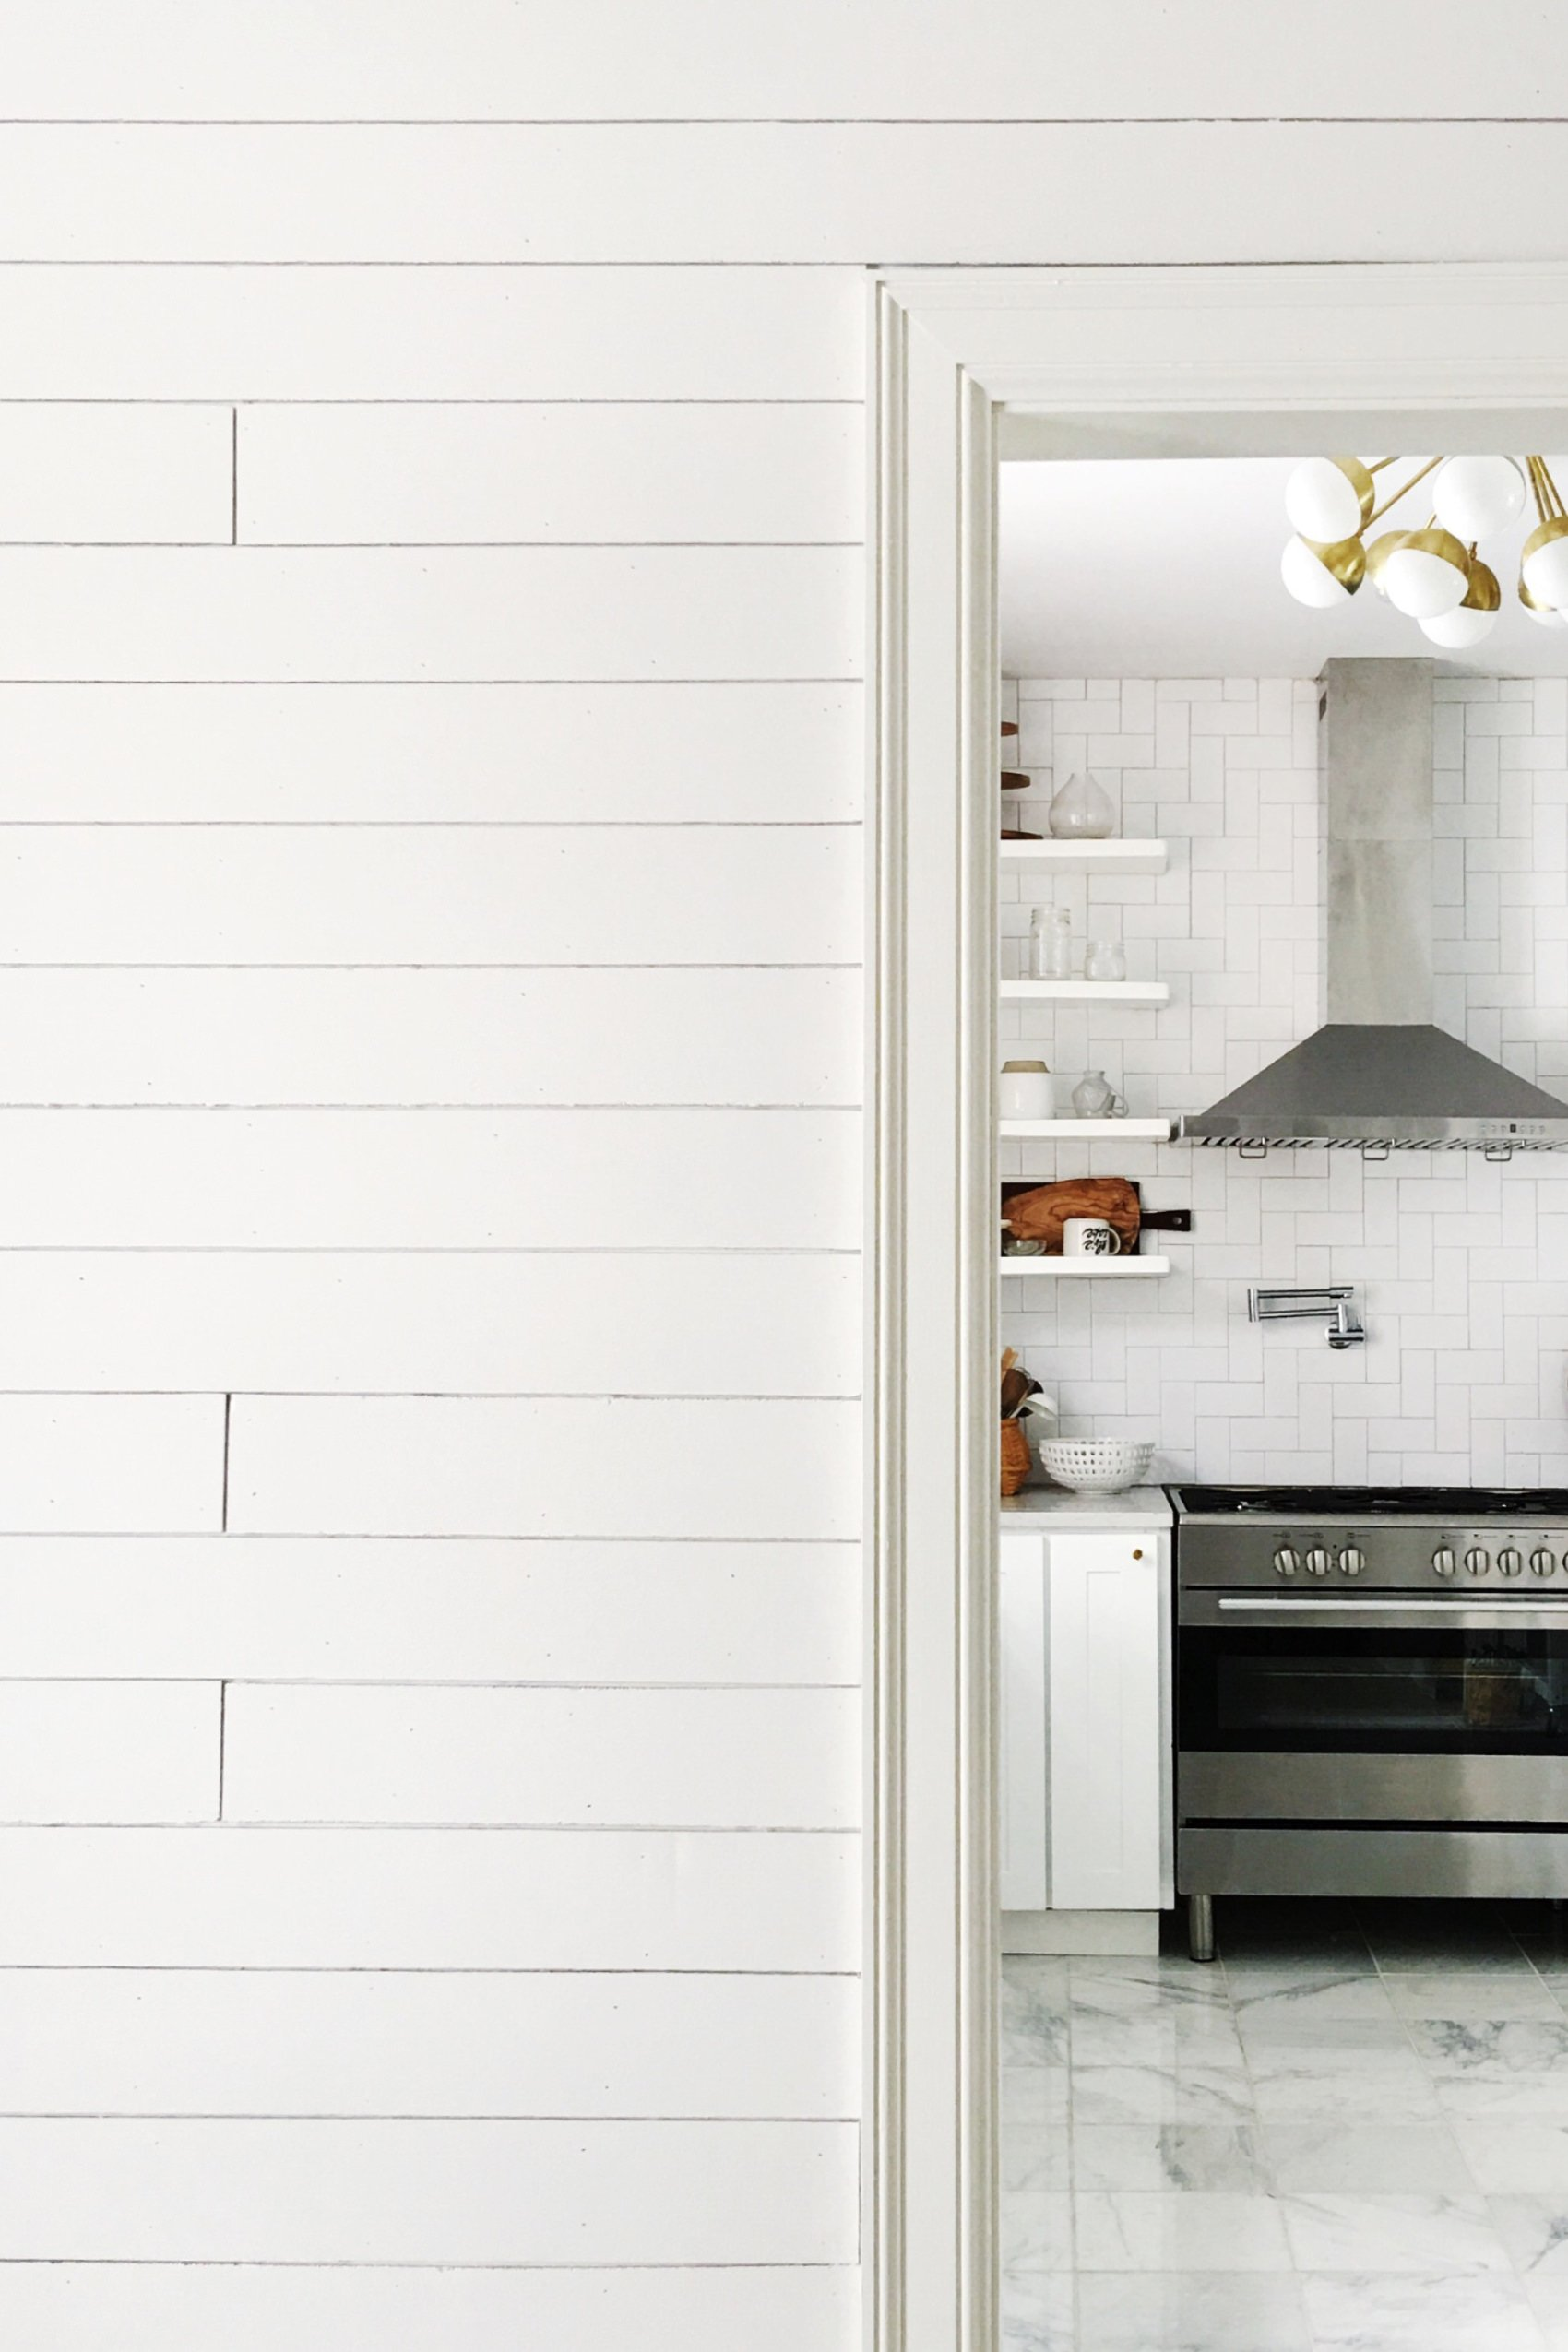 DIY Faux Shiplap with Peel and Stick Floor Planks